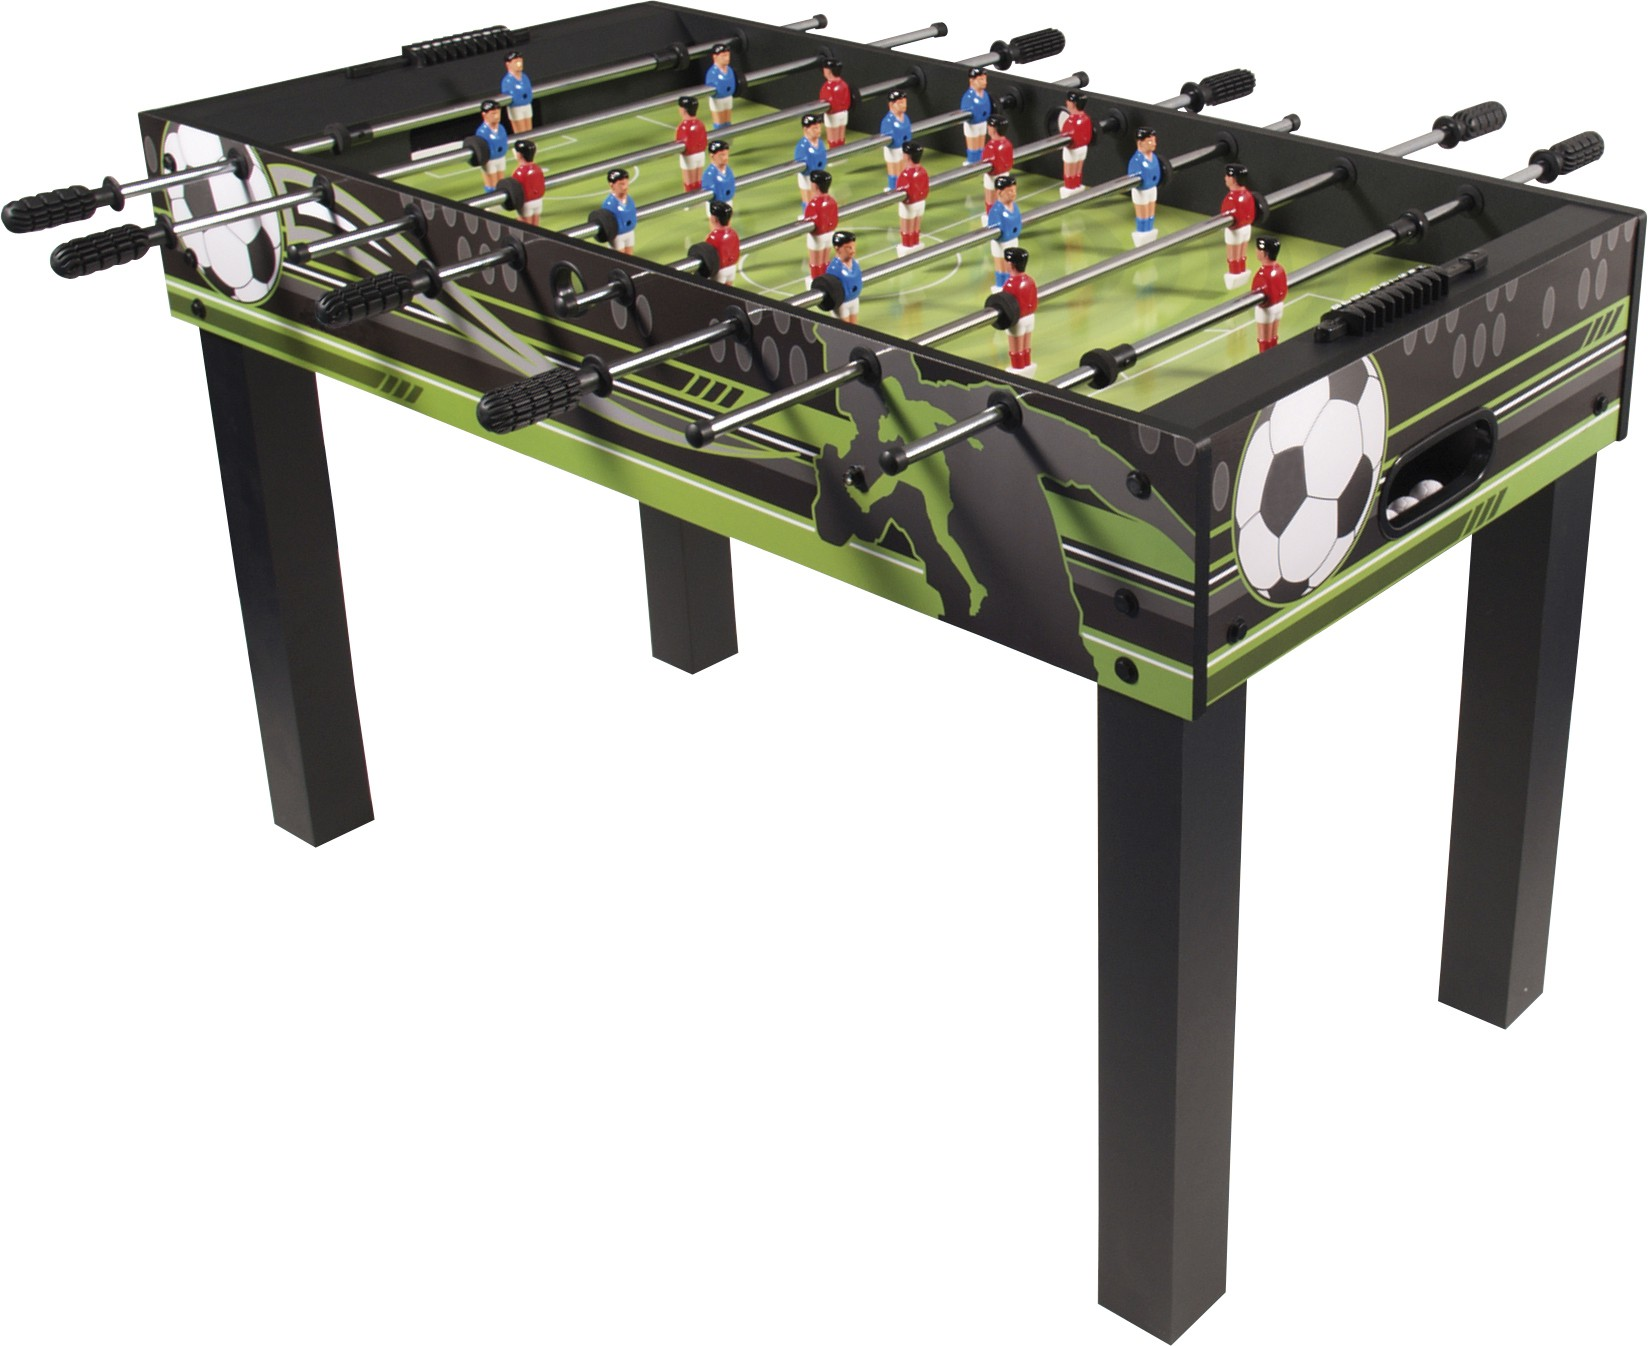 baby foot arcade jeux soccer babyfoot vintage. Black Bedroom Furniture Sets. Home Design Ideas